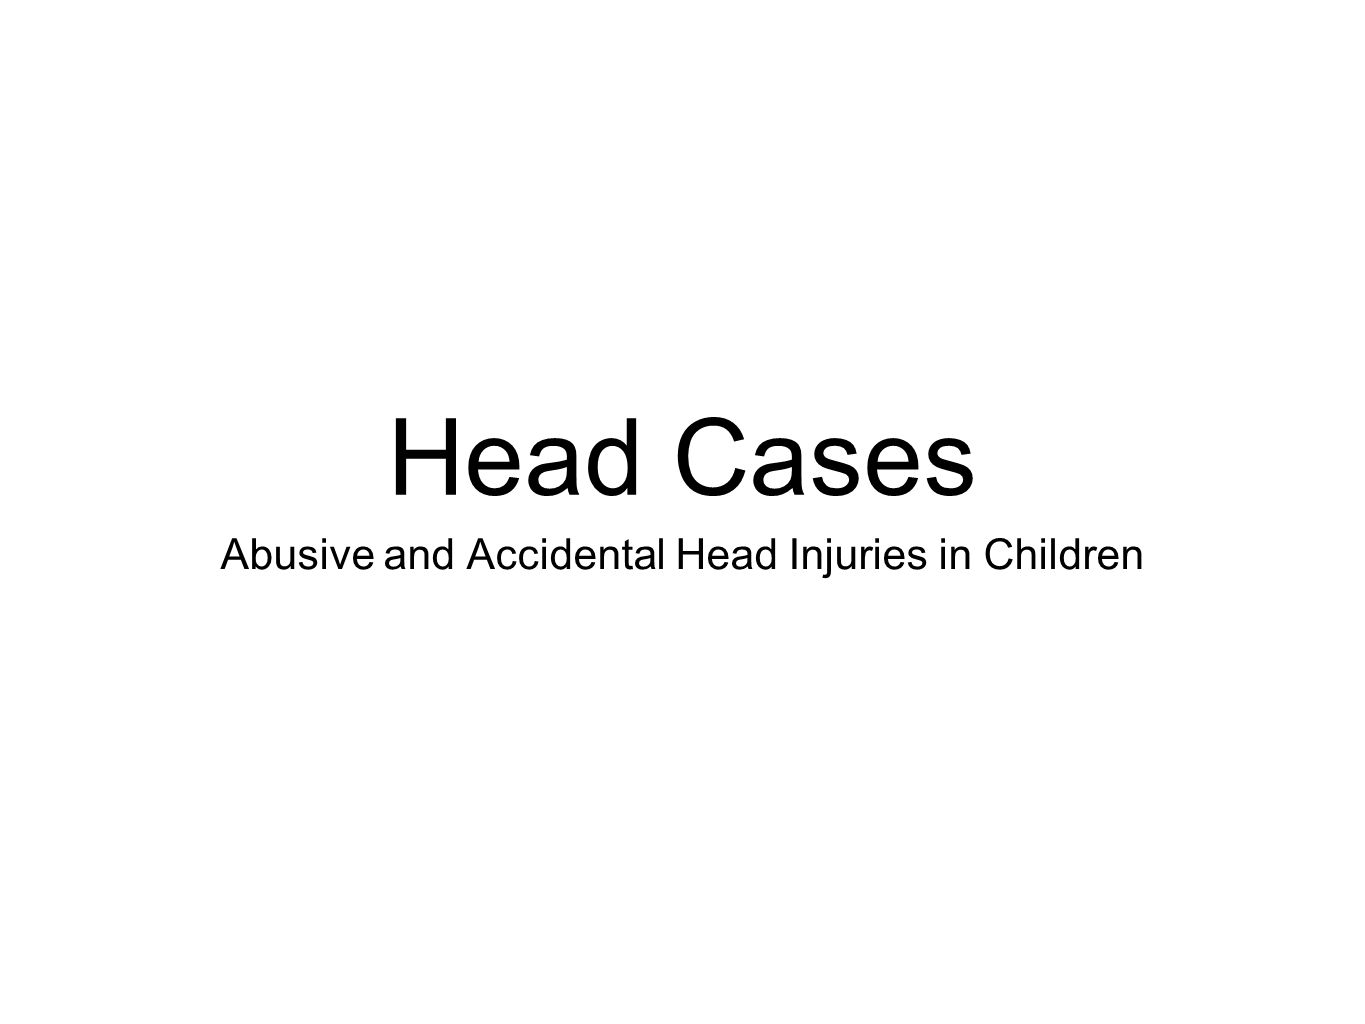 Head Cases Abusive and Accidental Head Injuries in Children